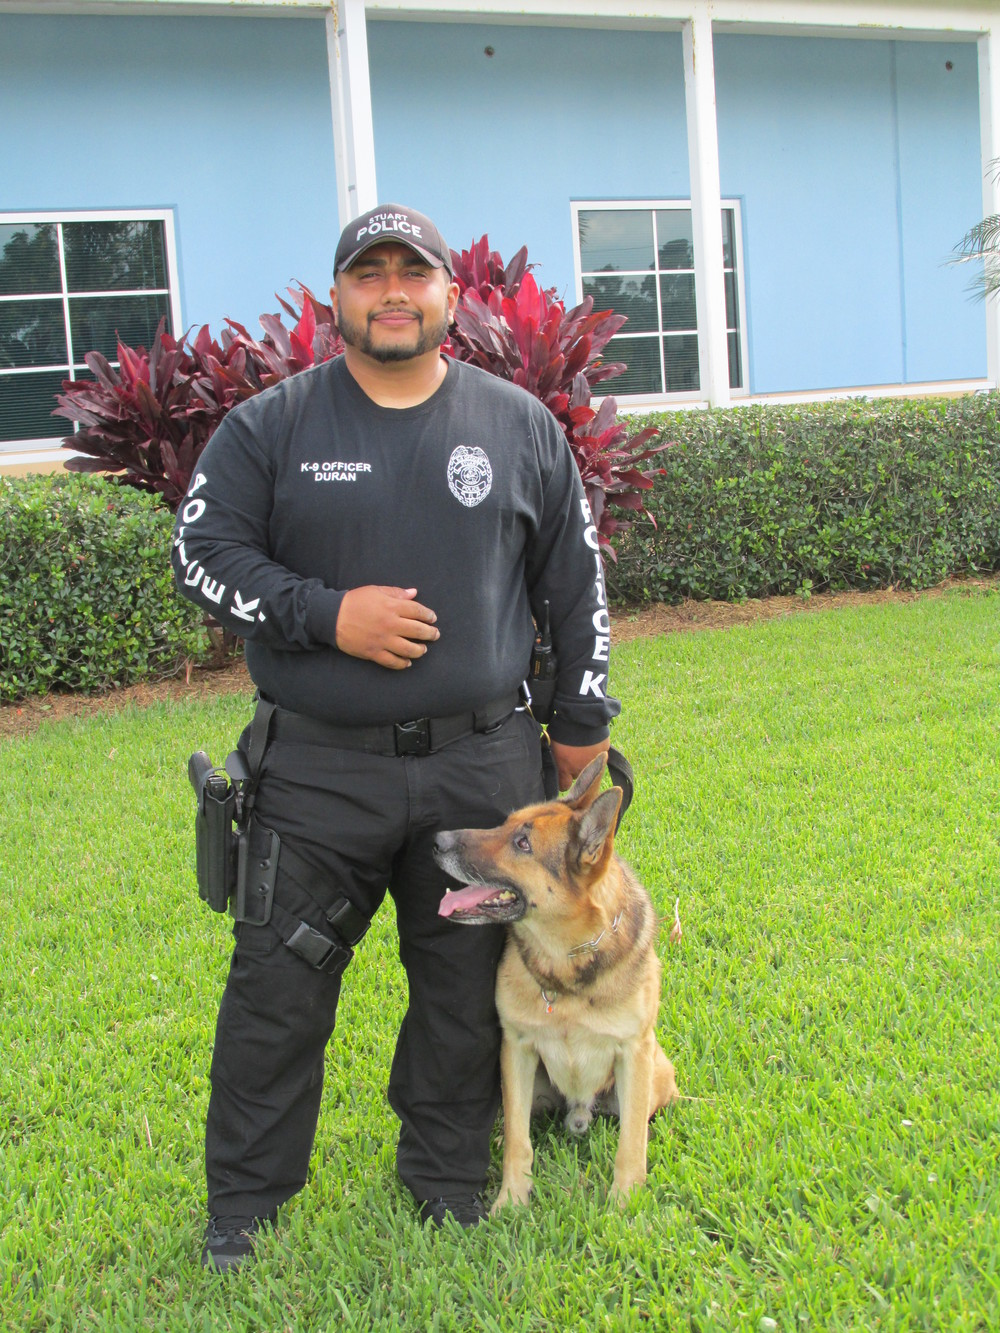 Officers David Duran and Cody; Stuart, FL 3/2014